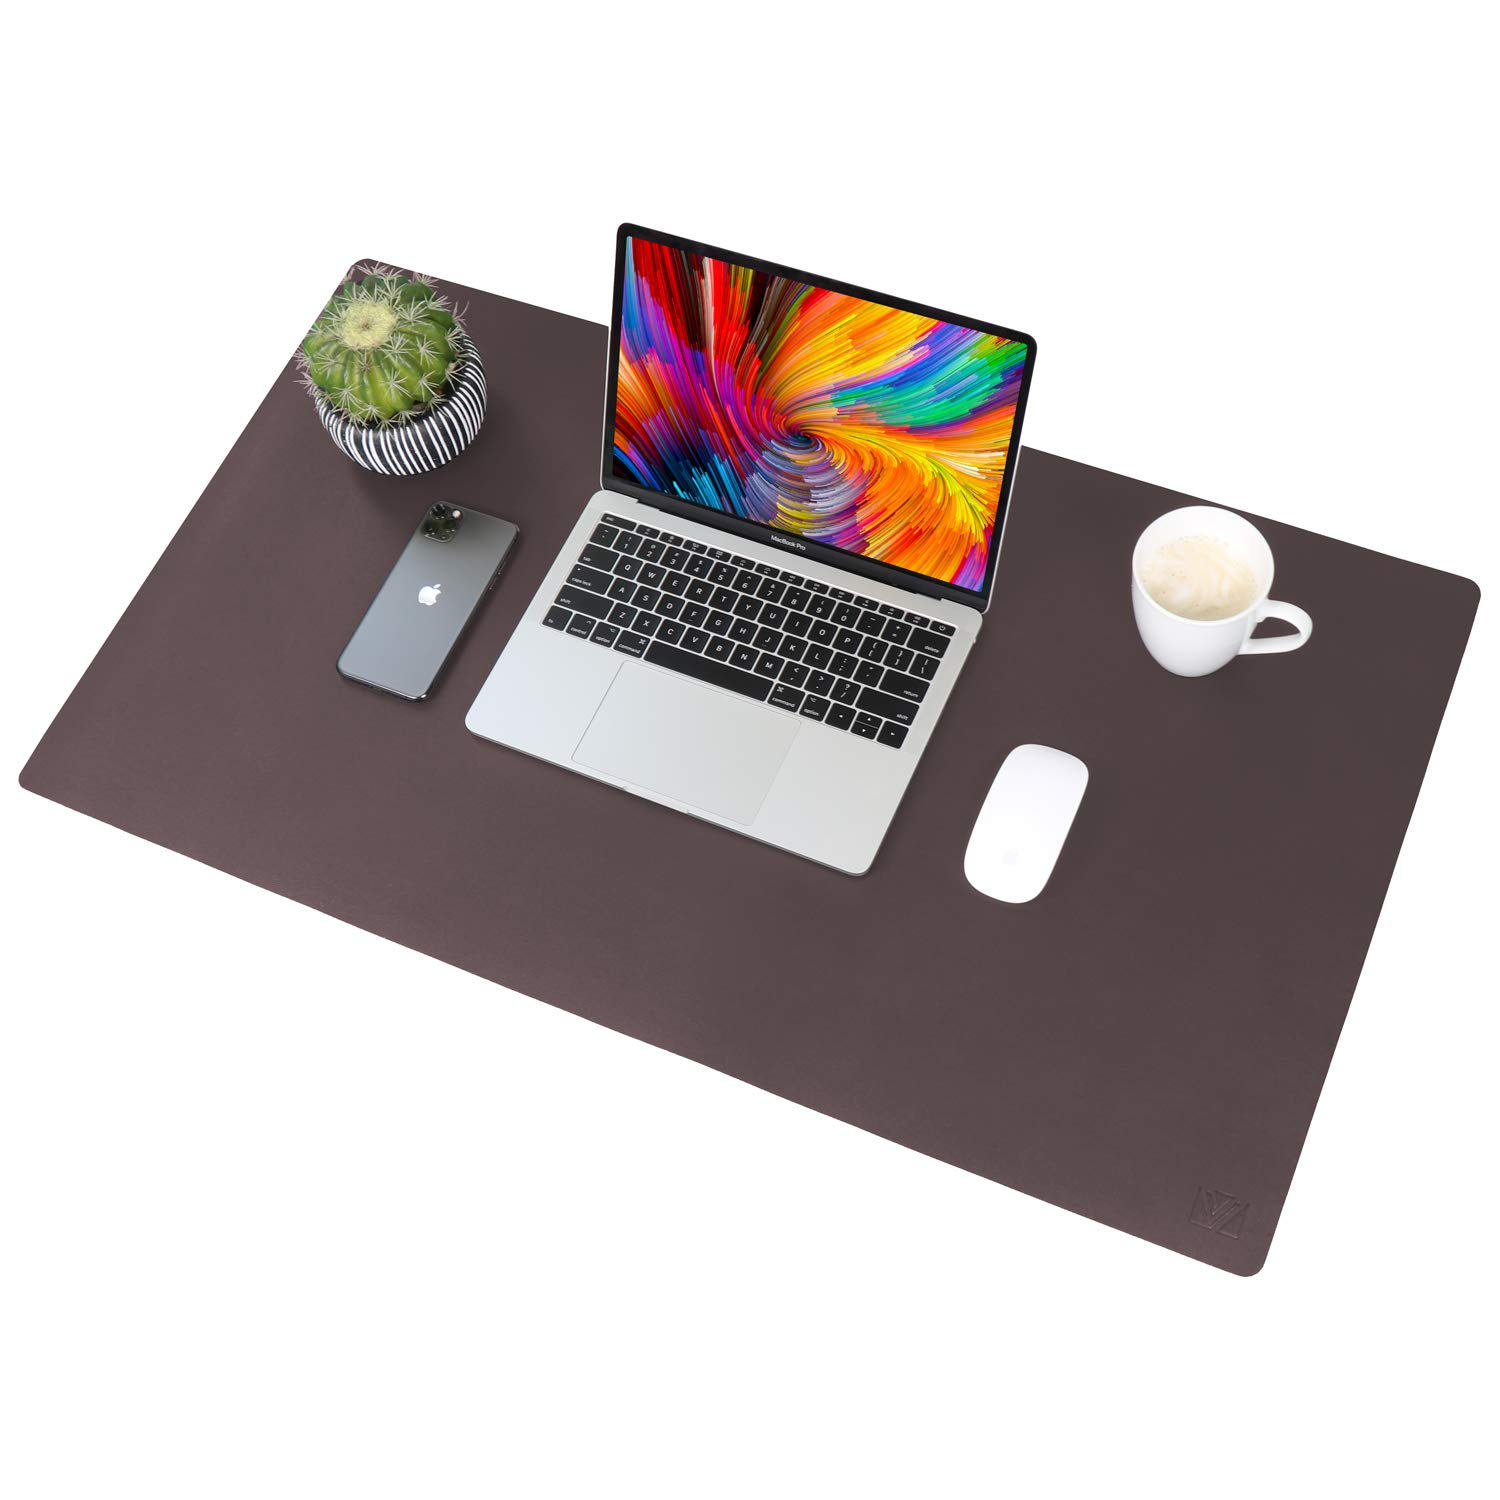 """Leather Desk Pad 36""""x 20"""", VineCreations Office Desk Mat Blotter Waterproof Brown - Premium Quality - Smooth Mouse Writing Surface - Maximum Protection for Desk Office/Home"""